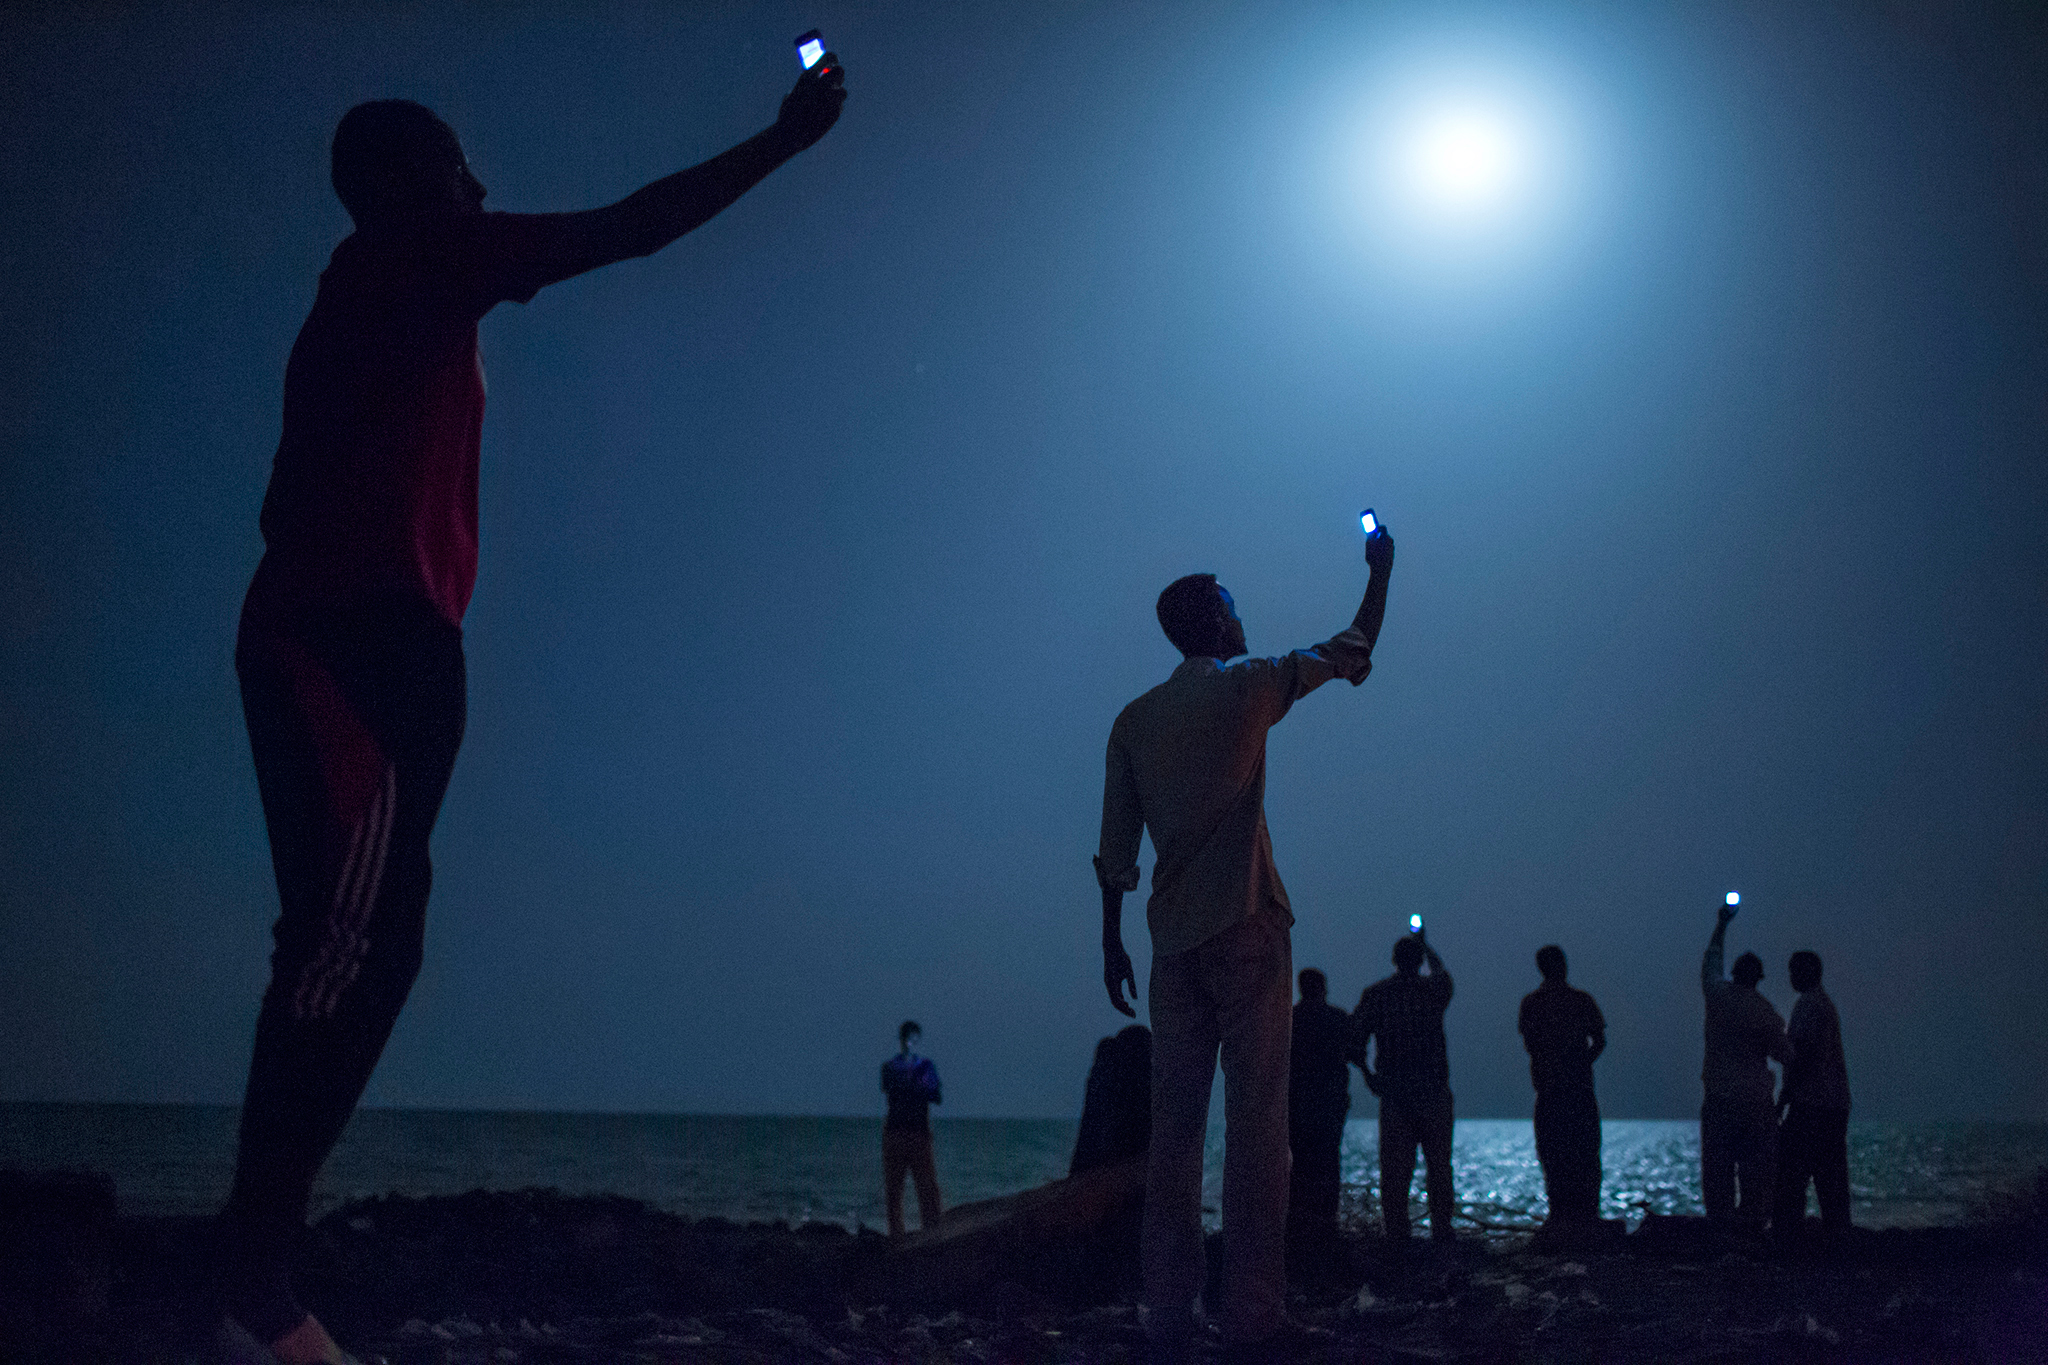 Somali's wave their mobile phones doing what is called among locals as Catching, trying to catch or pickup the mobile phone tower in neighboring Somalia as they stand on Khorley Beach, also called Dead Water Beach, in Djibouti City, Djibouti. As a means to stay in contact with their family and friends back home, one purchases a Somalia SIMM card from the black-market in Djibouti City, placing the SIMM in mobile phone and swinging about the phone in specific areas where a signal might be caught. The best time to catch the signals are at night. Djibouti City to the border of Somalia where the nearest Somali cell tower is located is only roughly 30 miles (48 kilometers) south of the capital of Djibouti.